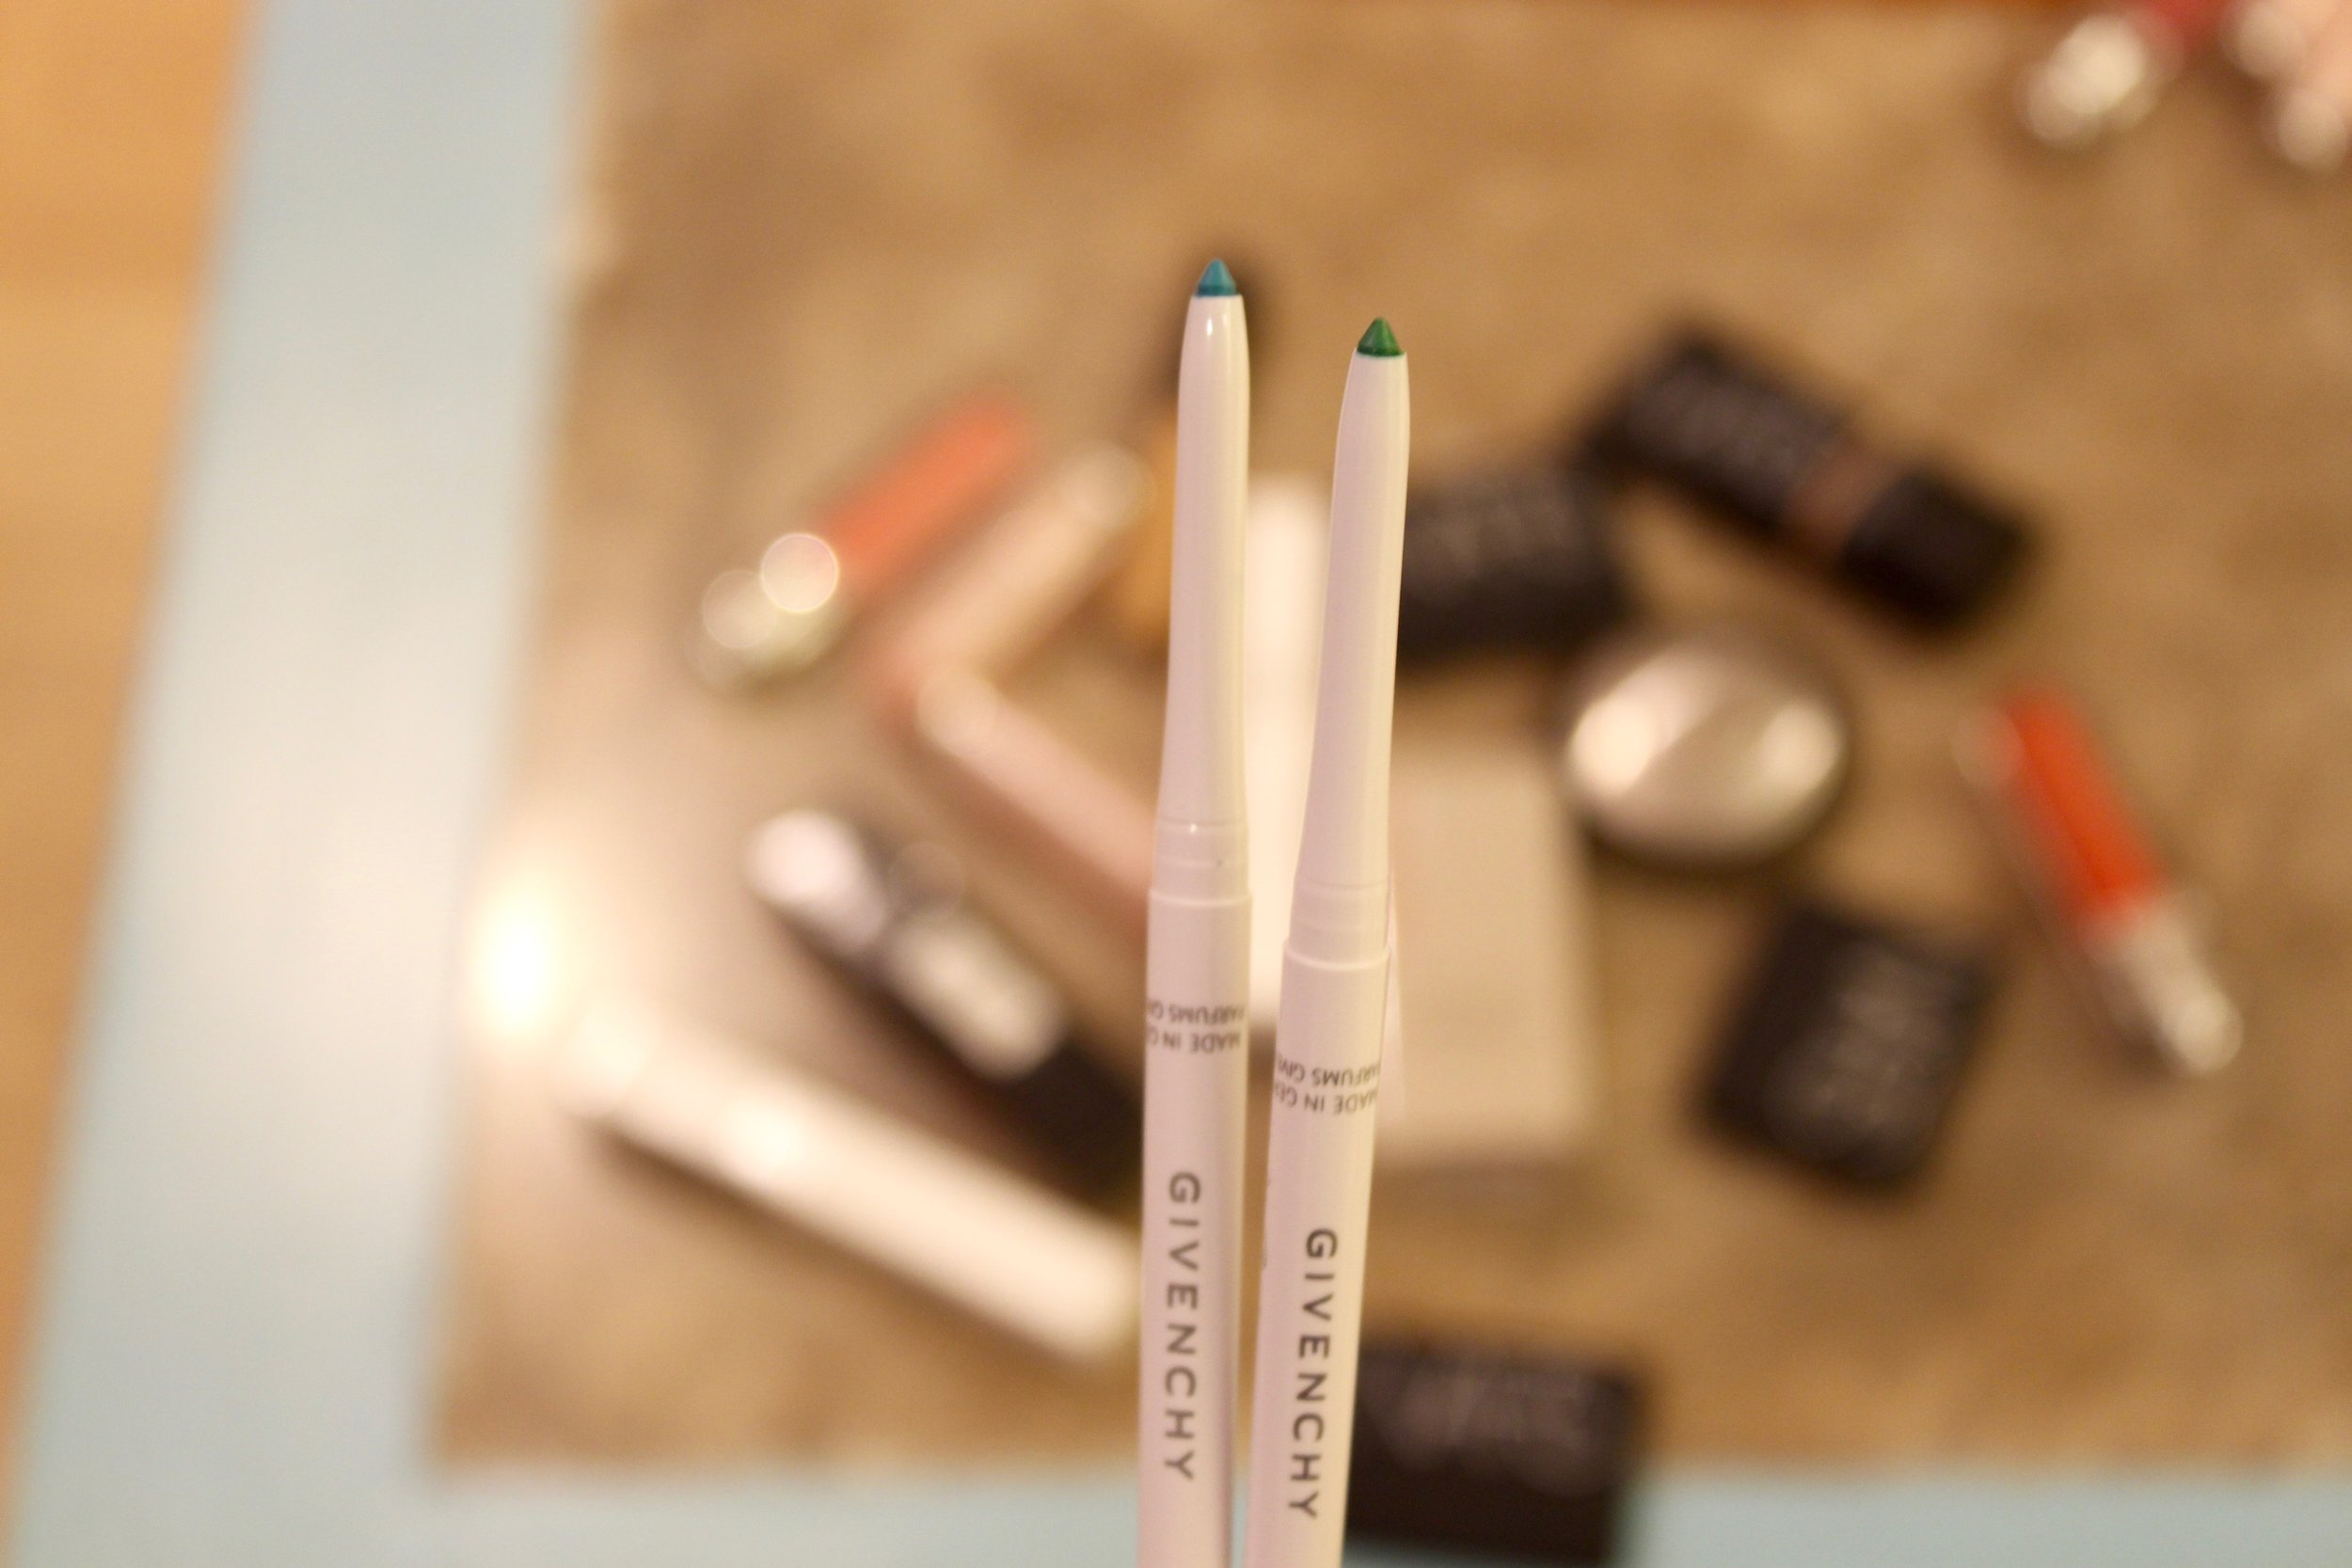 Givenchy Khôl Couture Waterproof Eyeliner No. 3 in Turquoise & No. 5 in Jade